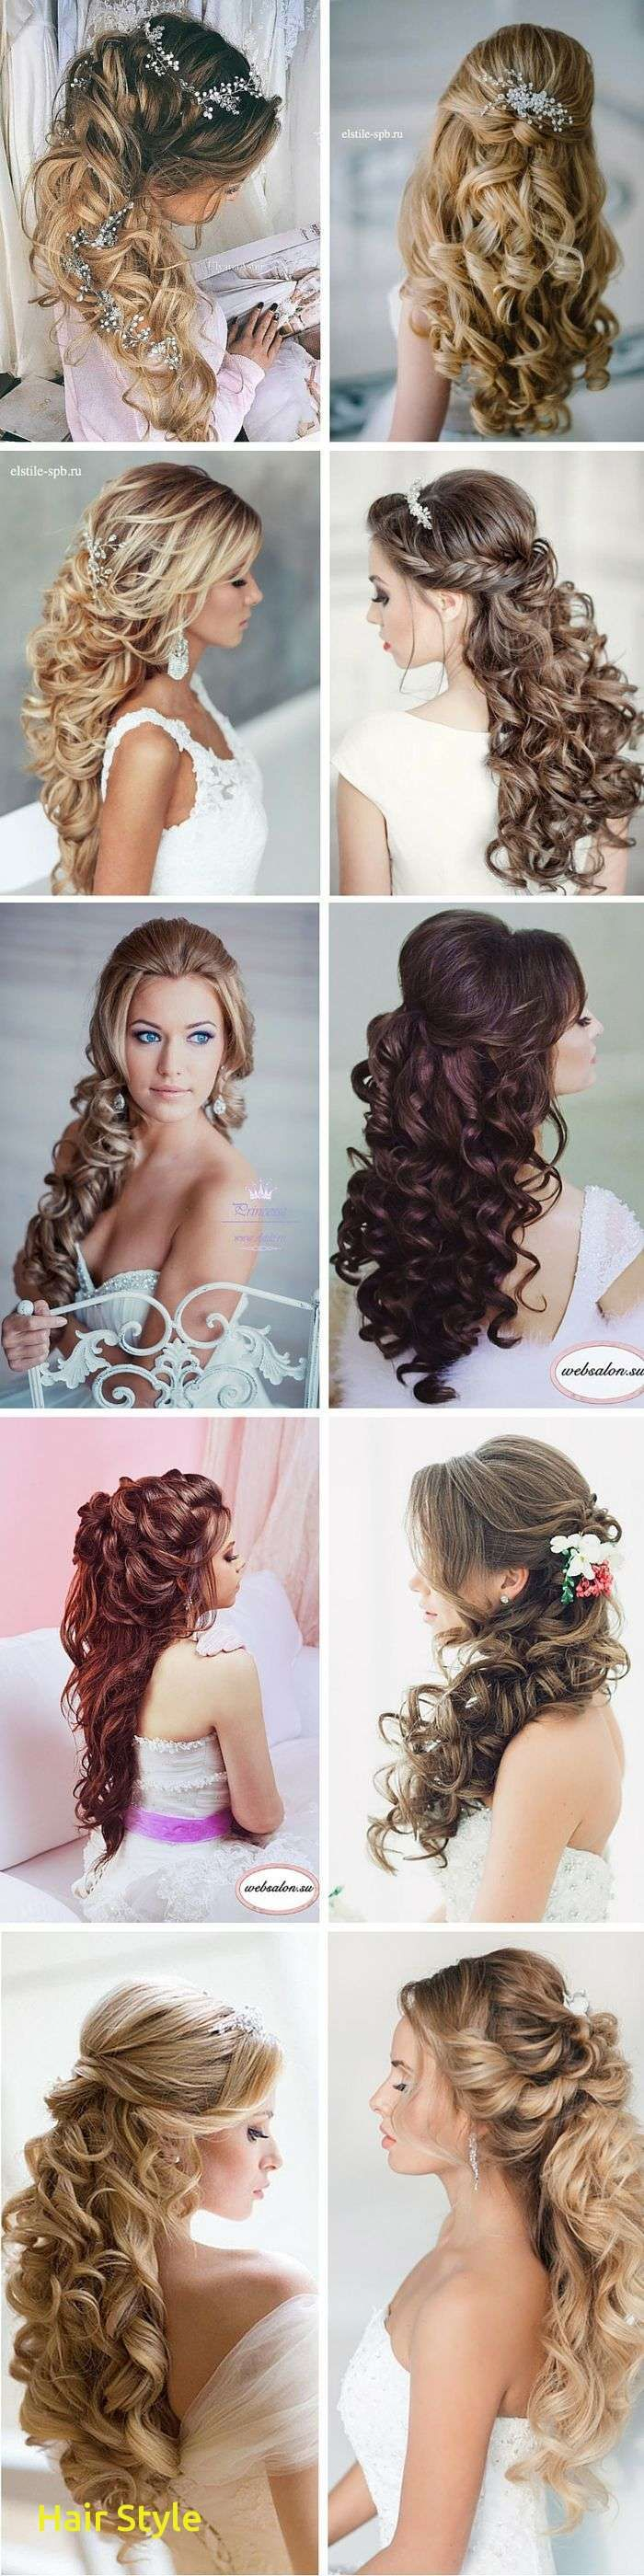 Elegante hochzeit frisuren curly hair halb hoch forever after